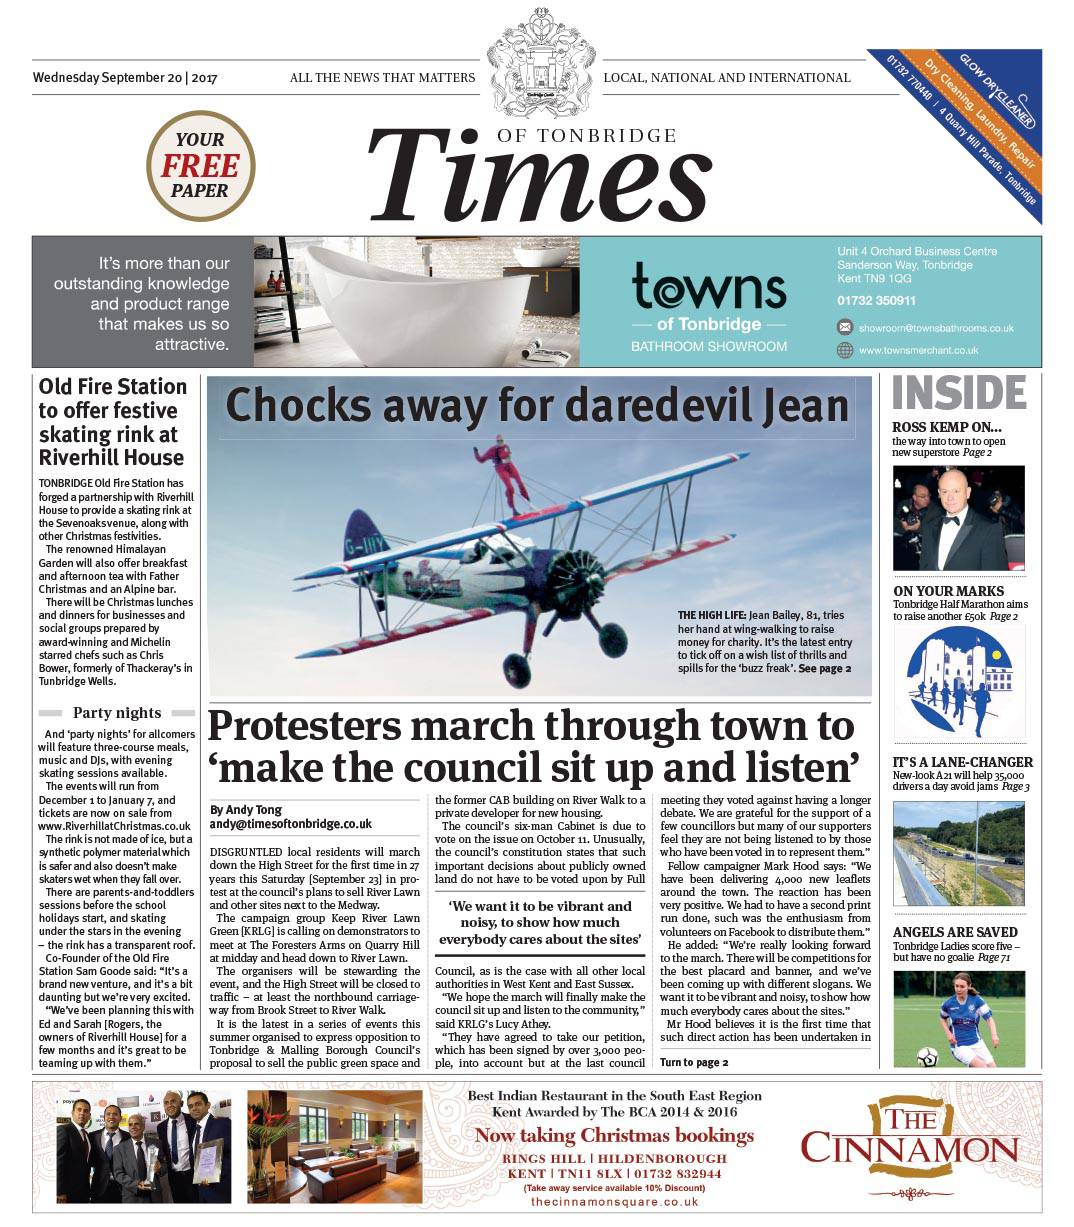 Read the Times of Tonbridge 20th September 2017